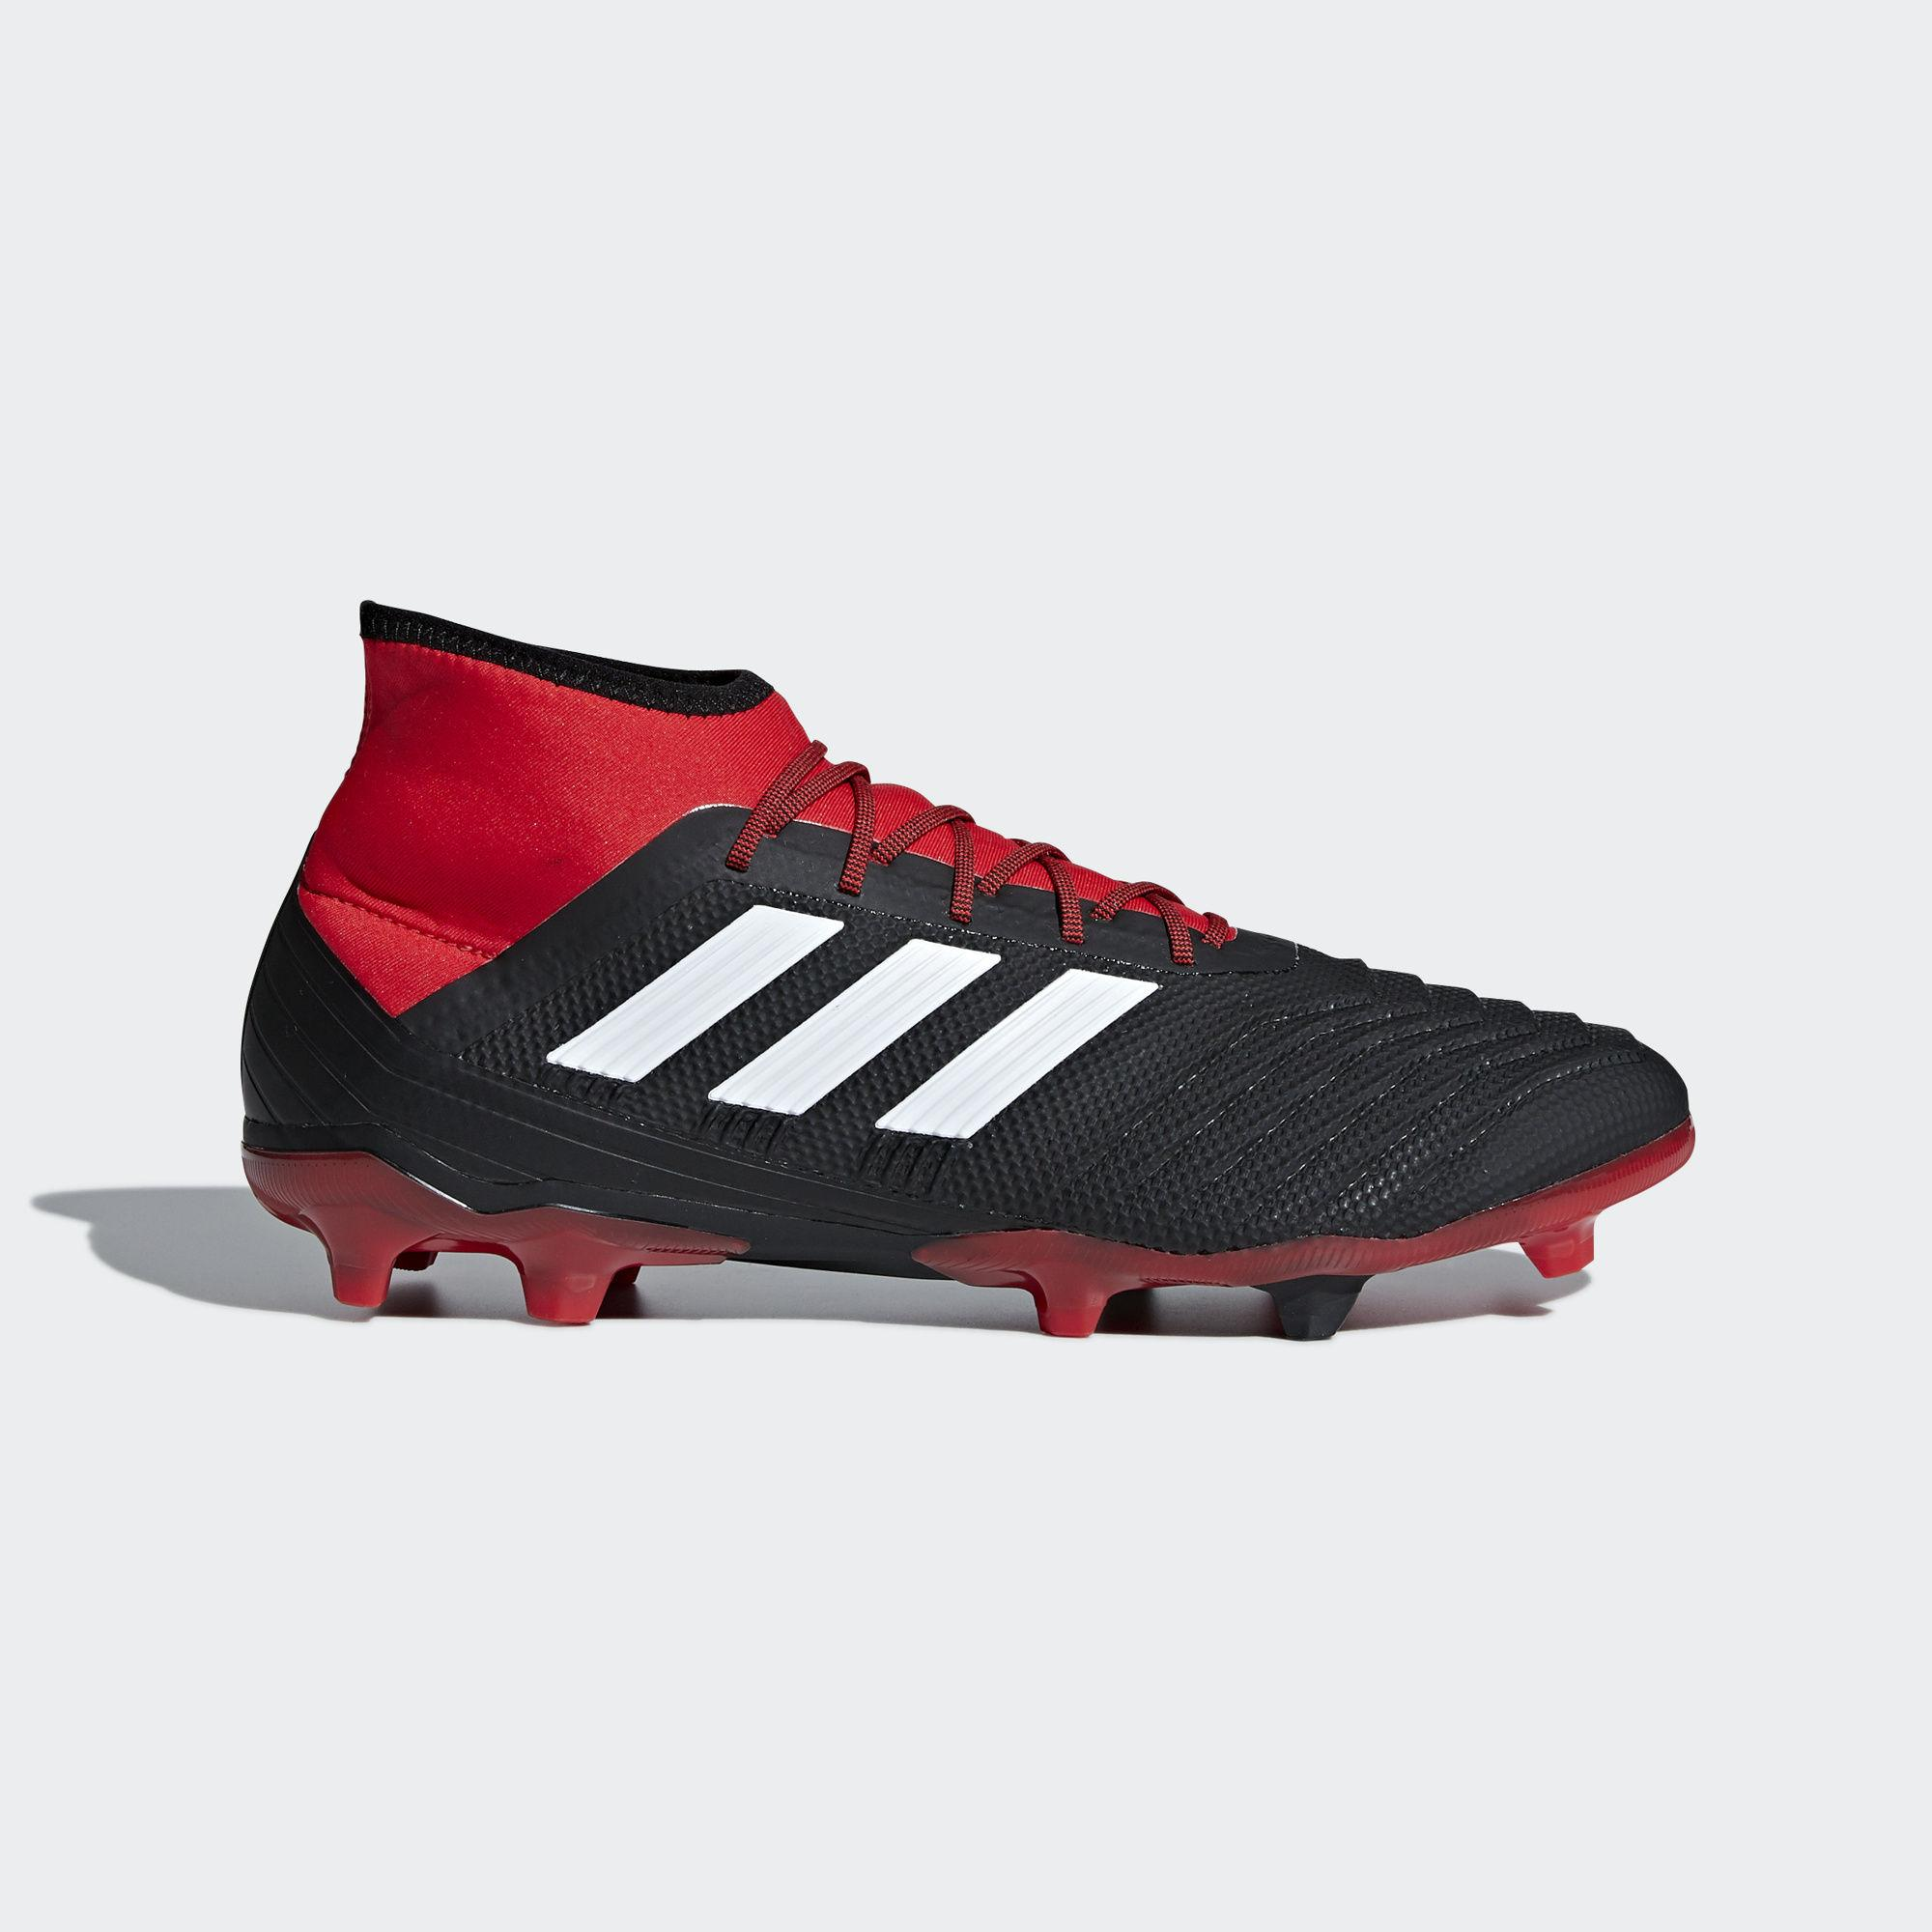 6b1d5eaab adidas Predator 18.2 Firm Ground Boots in Red for Men - Lyst